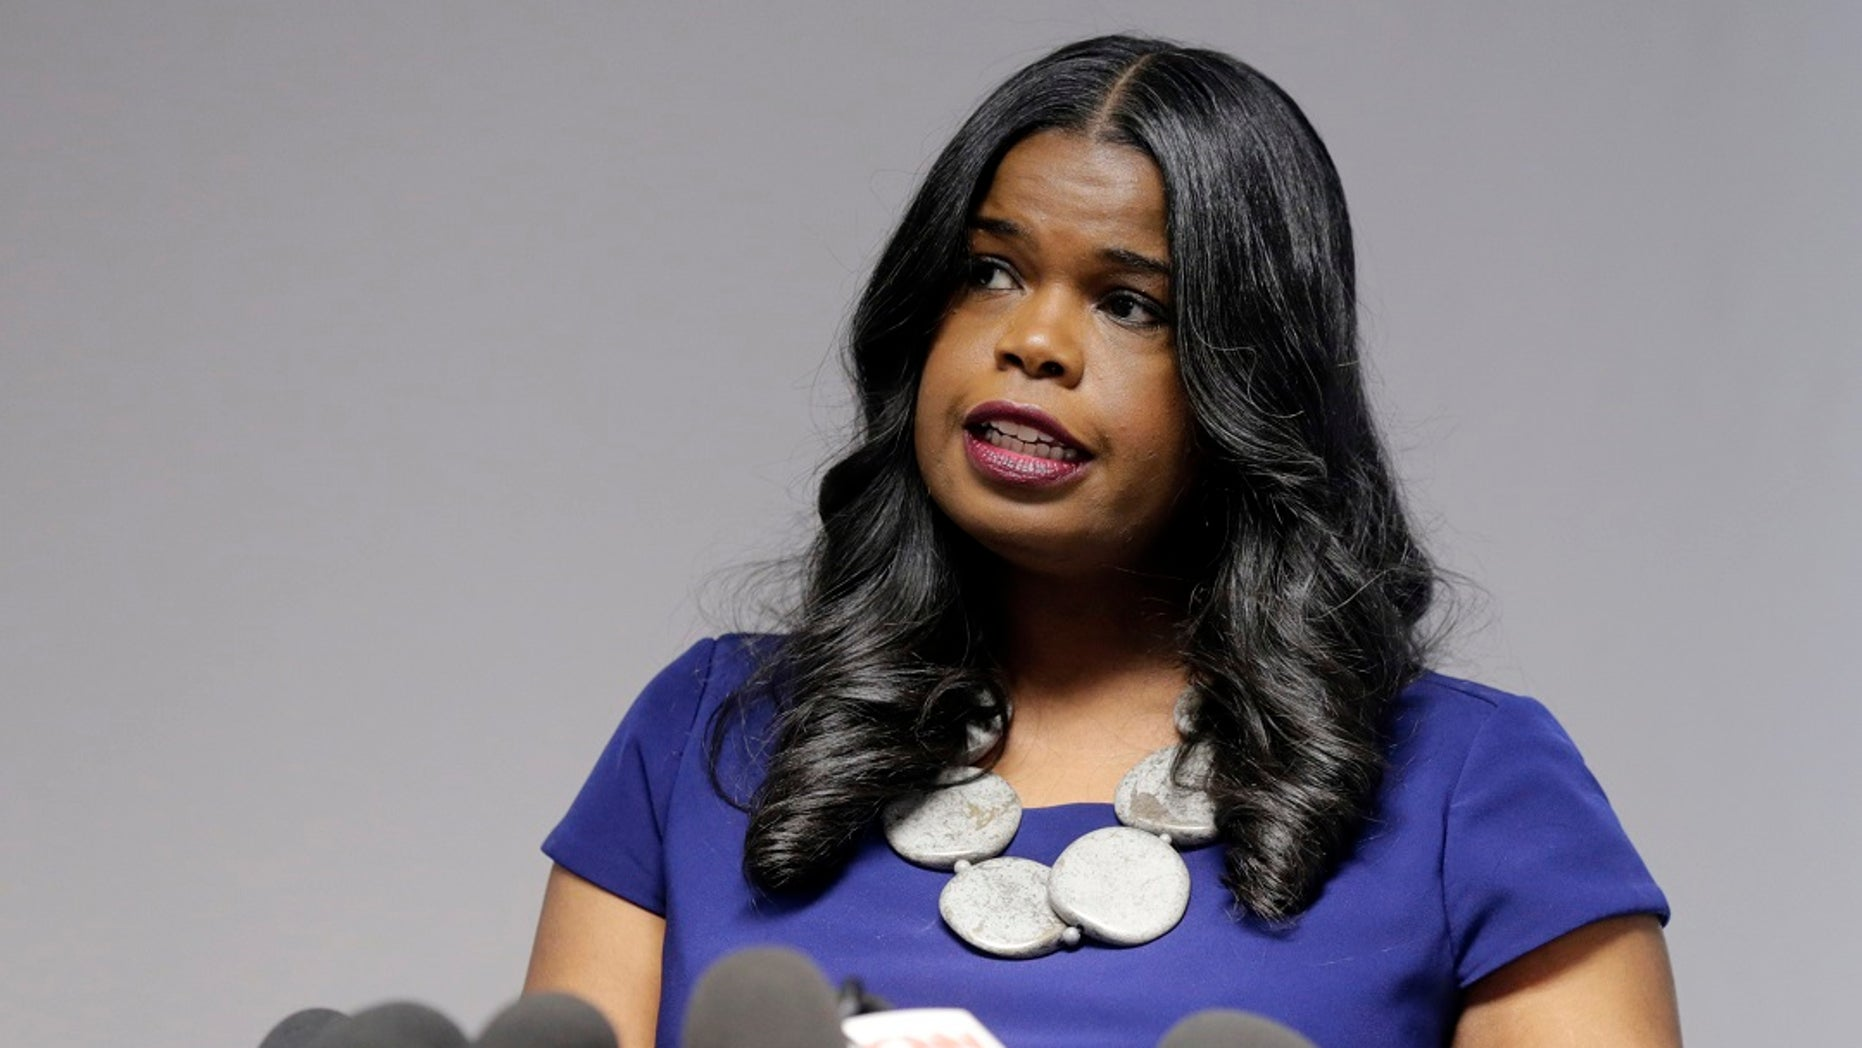 Westlake Legal Group AP19102668123541 State's Attorney Kim Foxx calls Jussie Smollett 'washed up celeb who lied to cops' in text message: report Louis Casiano fox-news/person/jussie-smollett fox news fnc/entertainment fnc article 5883ce51-7393-599b-9df7-c8522ca0e3f2